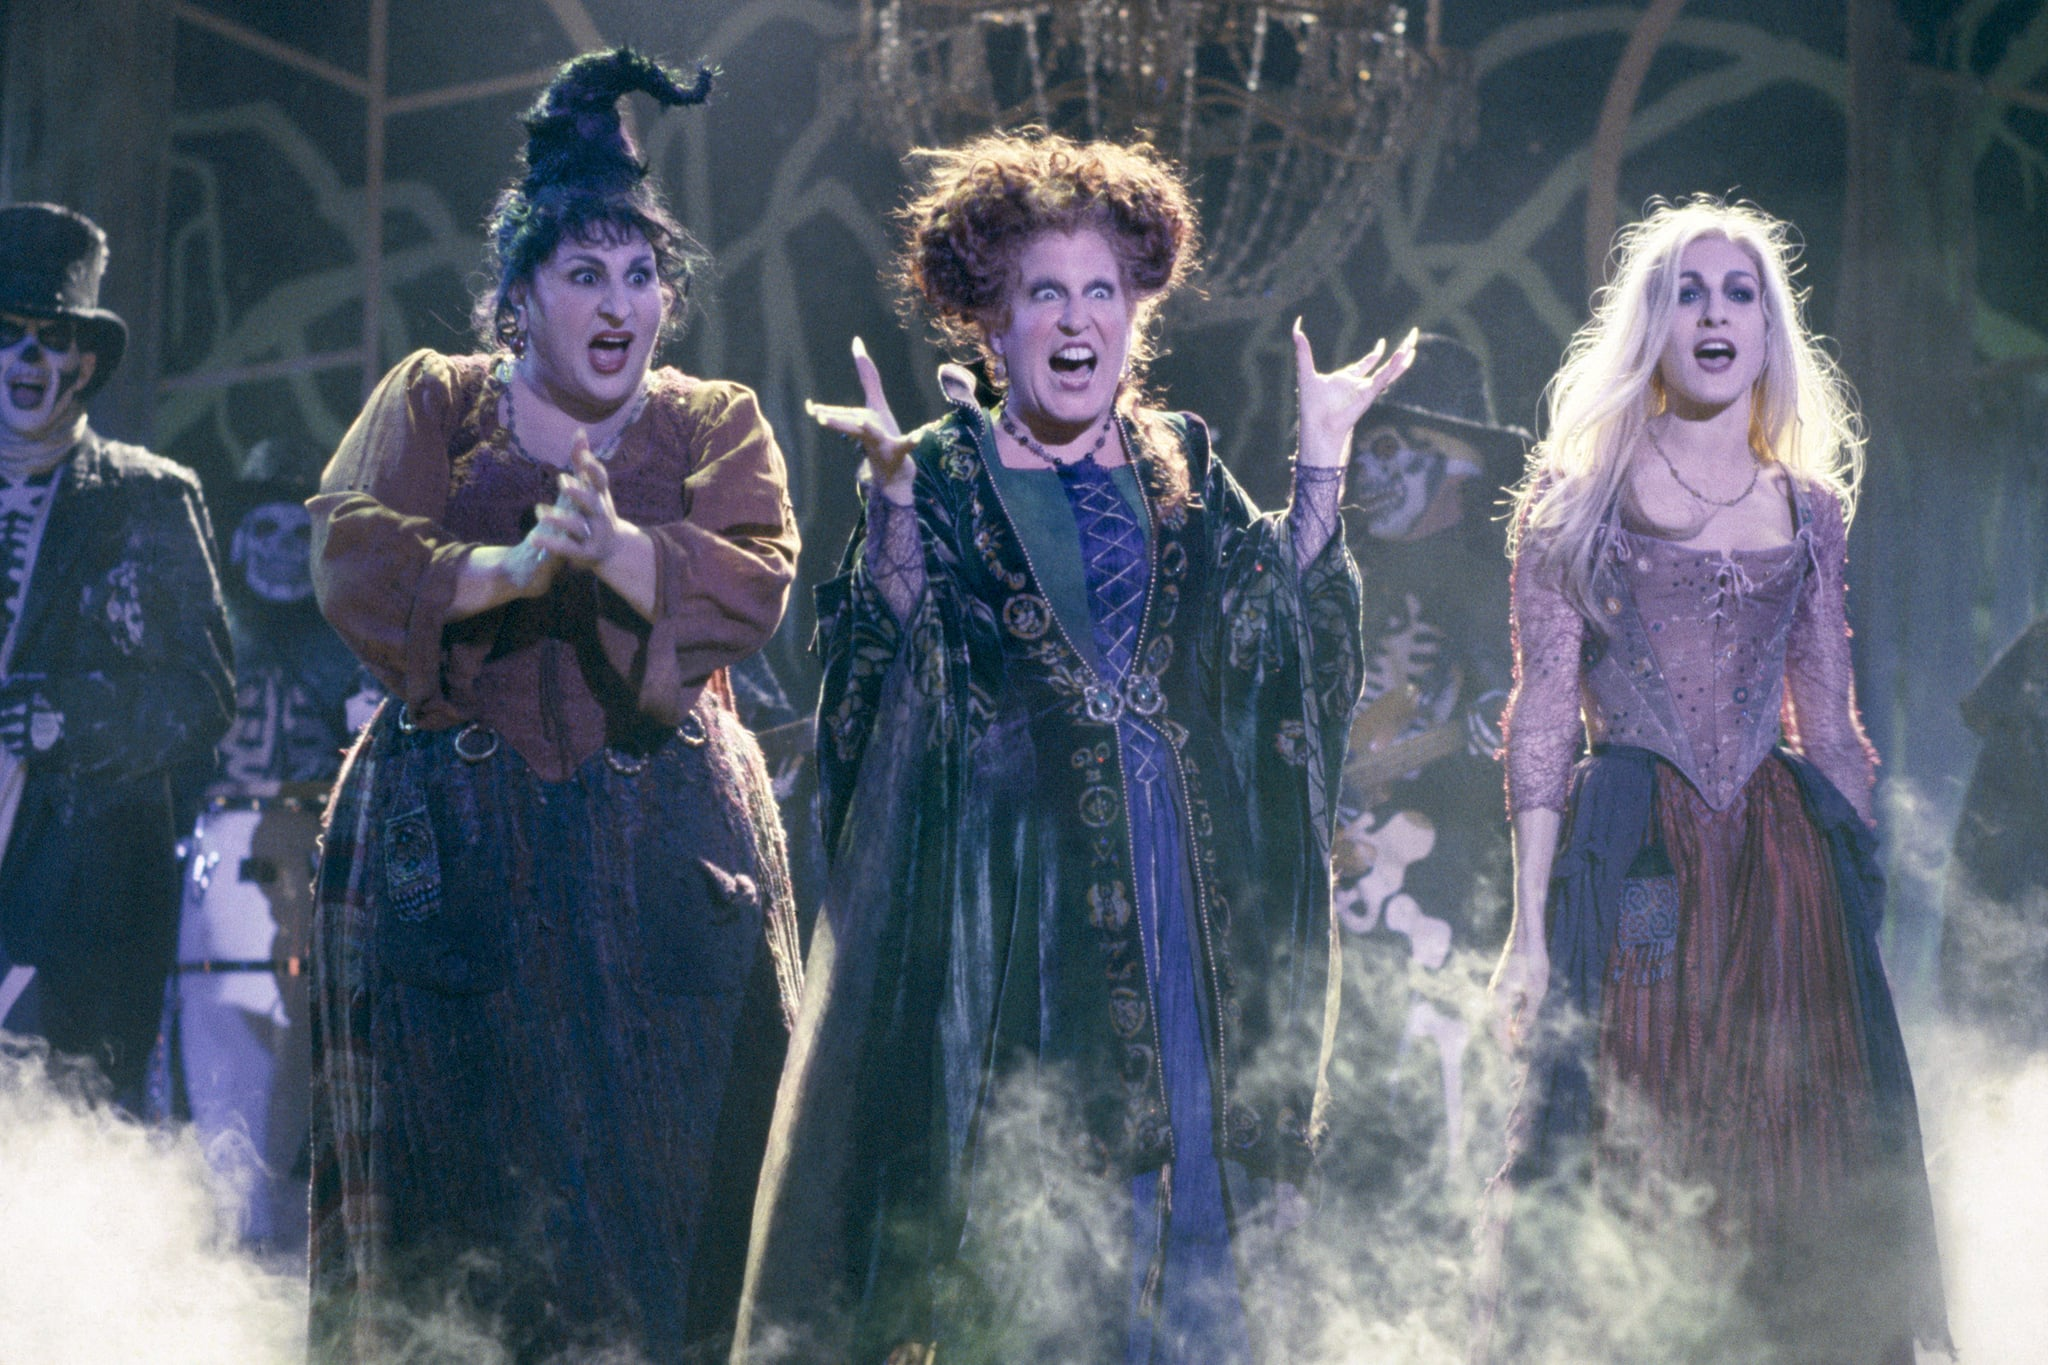 HOCUS POCUS, Kathy Najimy, Bette Midler, Sarah Jessica Parker, 1993, (c) Buena Vista/courtesy Everett Collection